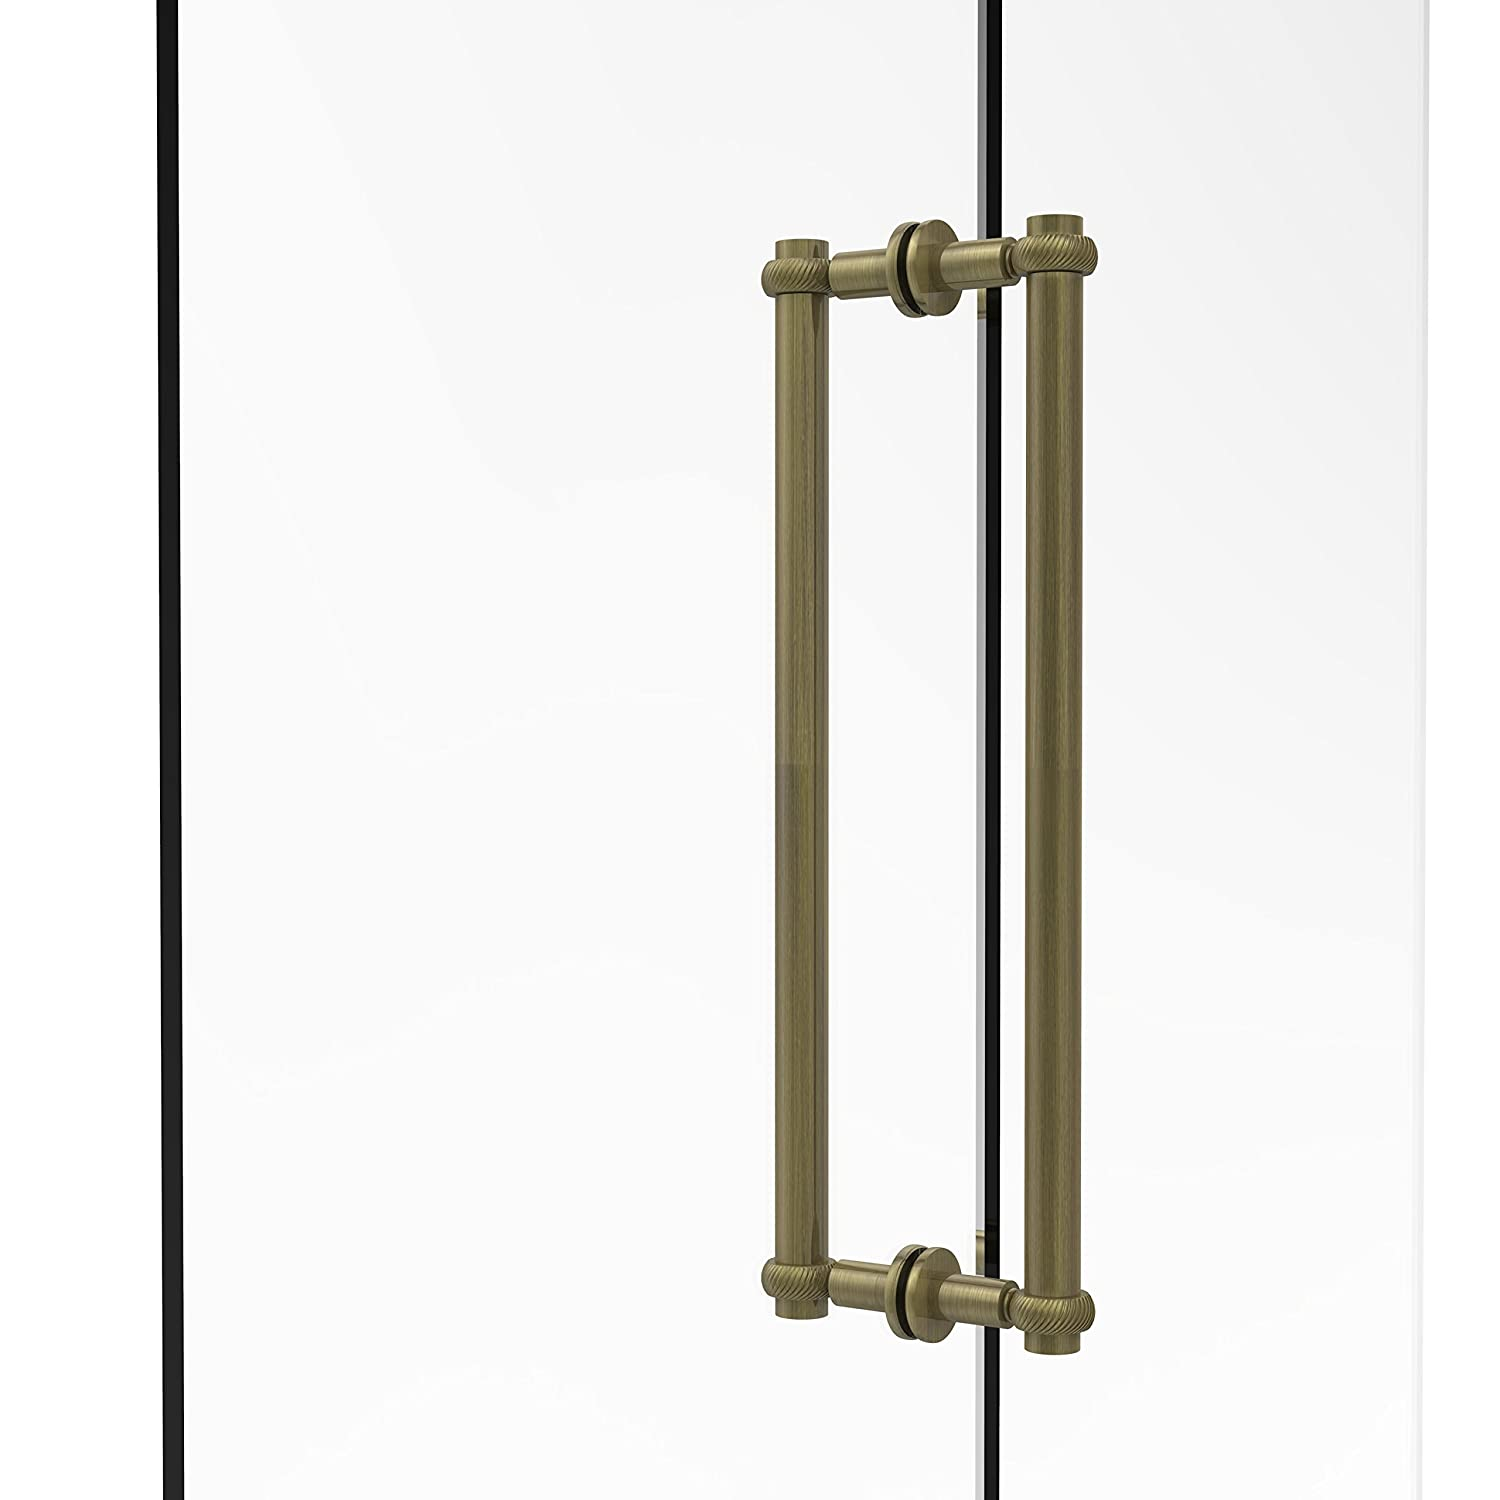 Antique Brass Allied Brass 404T-18BB-ABR Contemporary 18 Inch Back Shower Door Pull with Twisted Accent